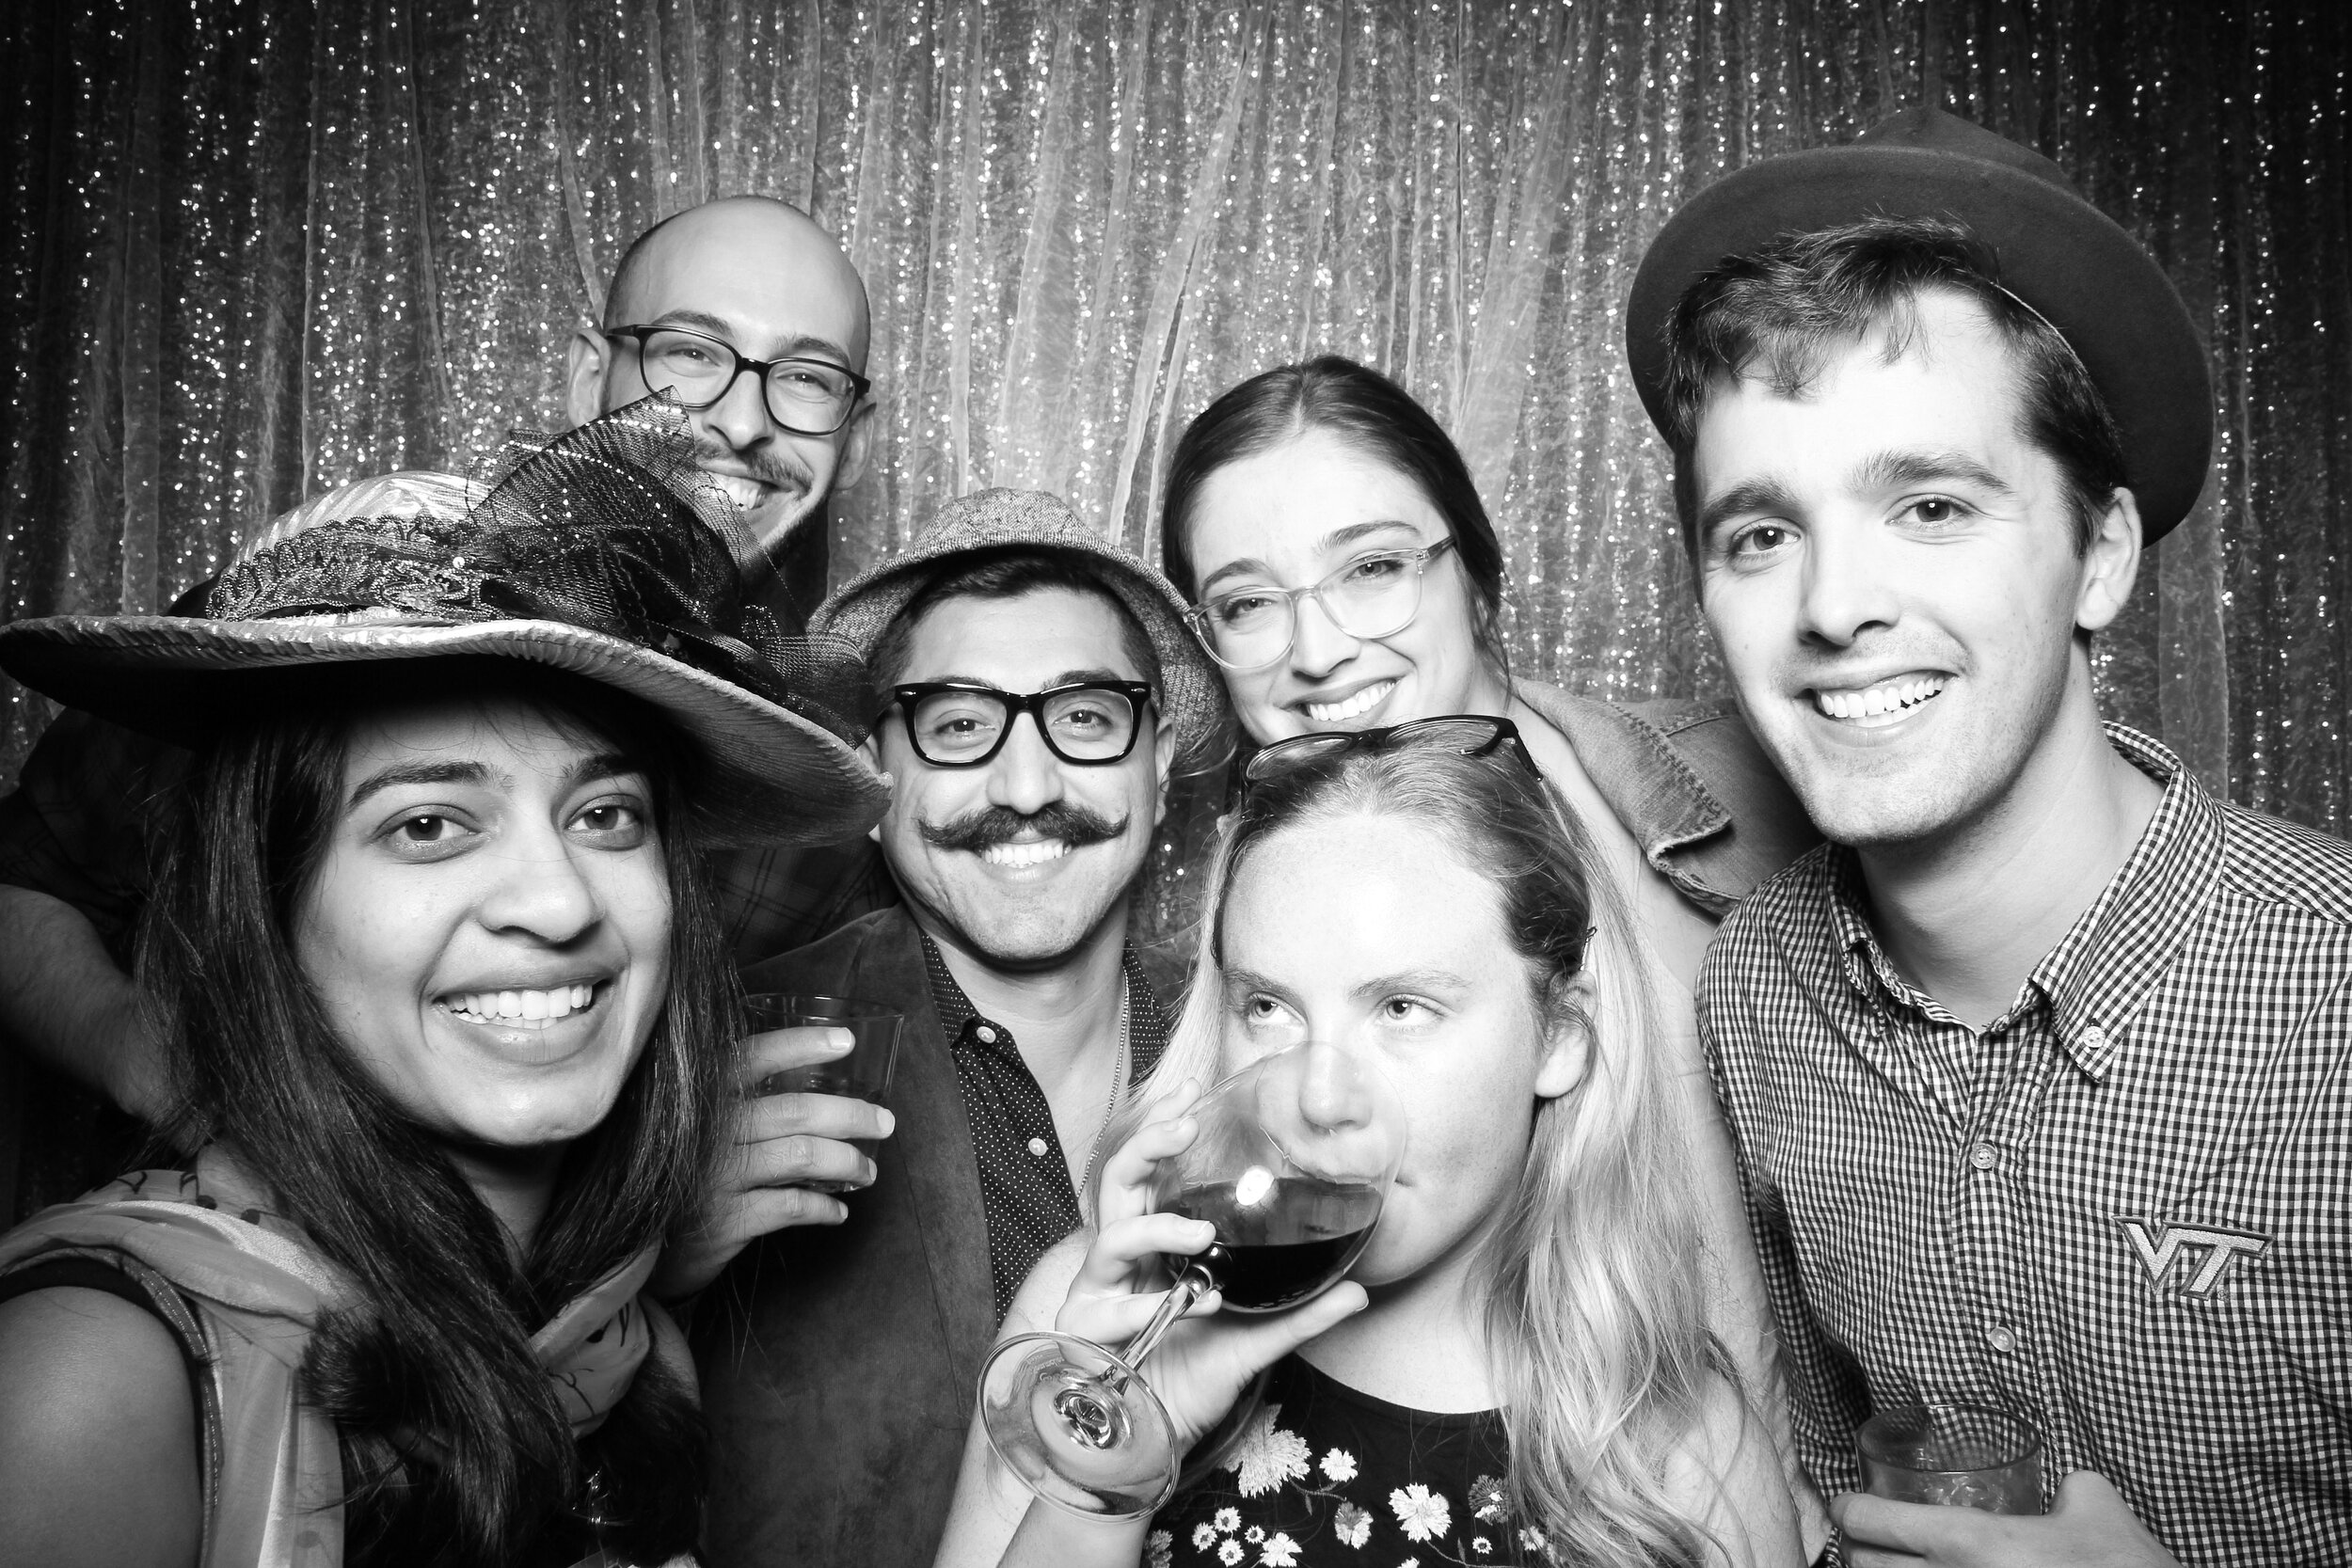 Chicago_Vintage_Wedding_Photobooth_House_of_Blues_10.jpg